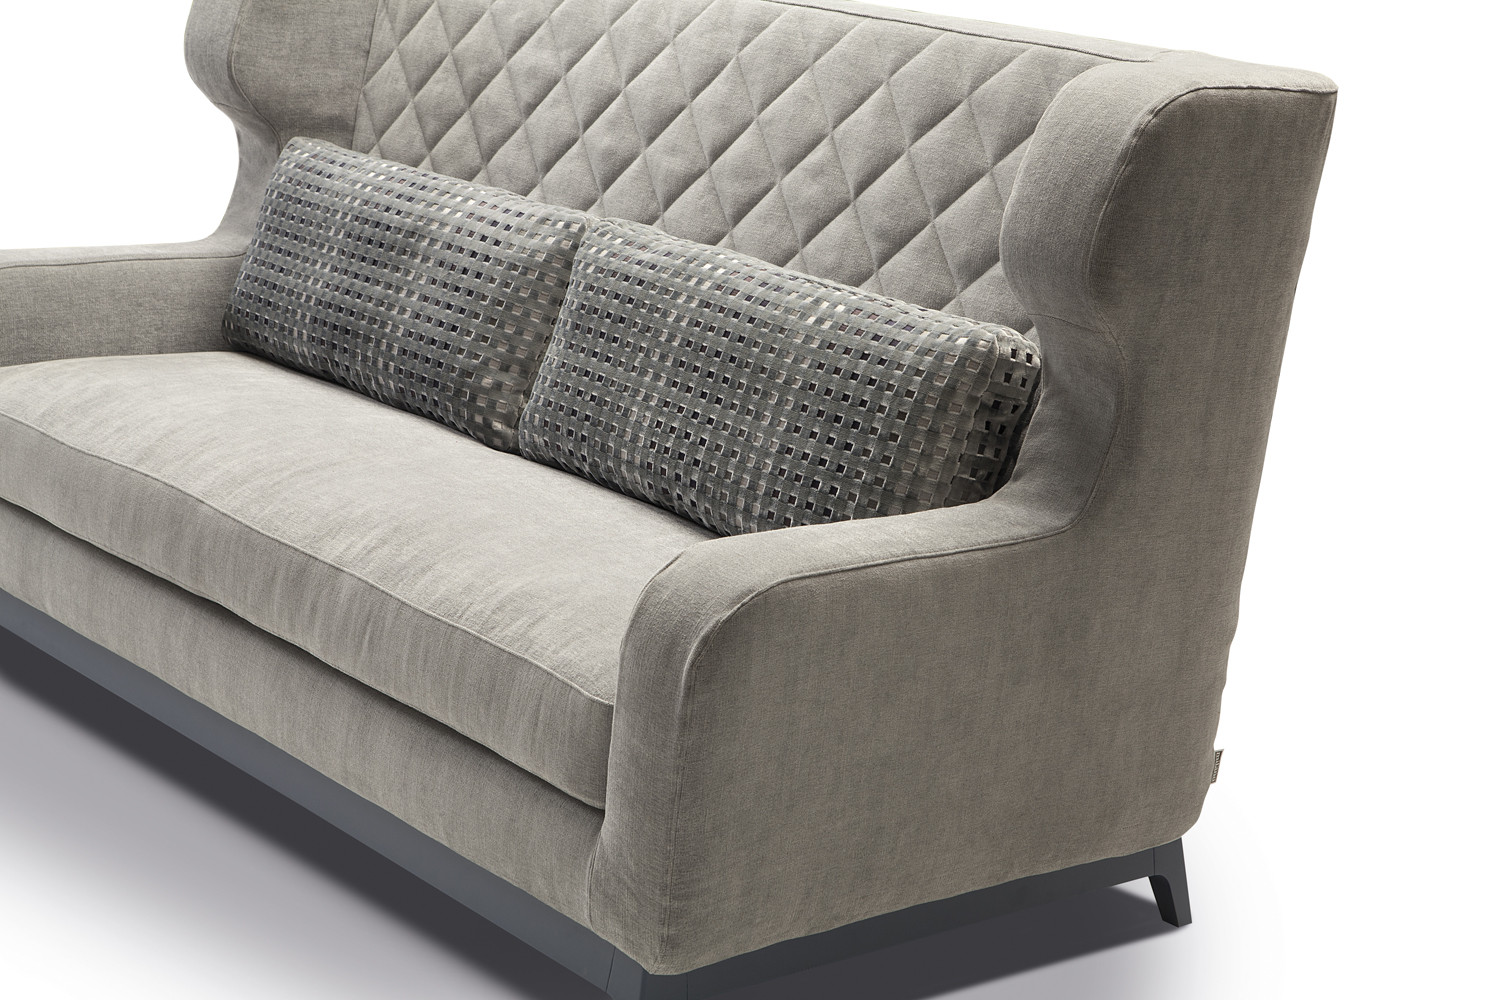 Bed chair backrest - Morgan Sofa Bed With High Quilted Backrest